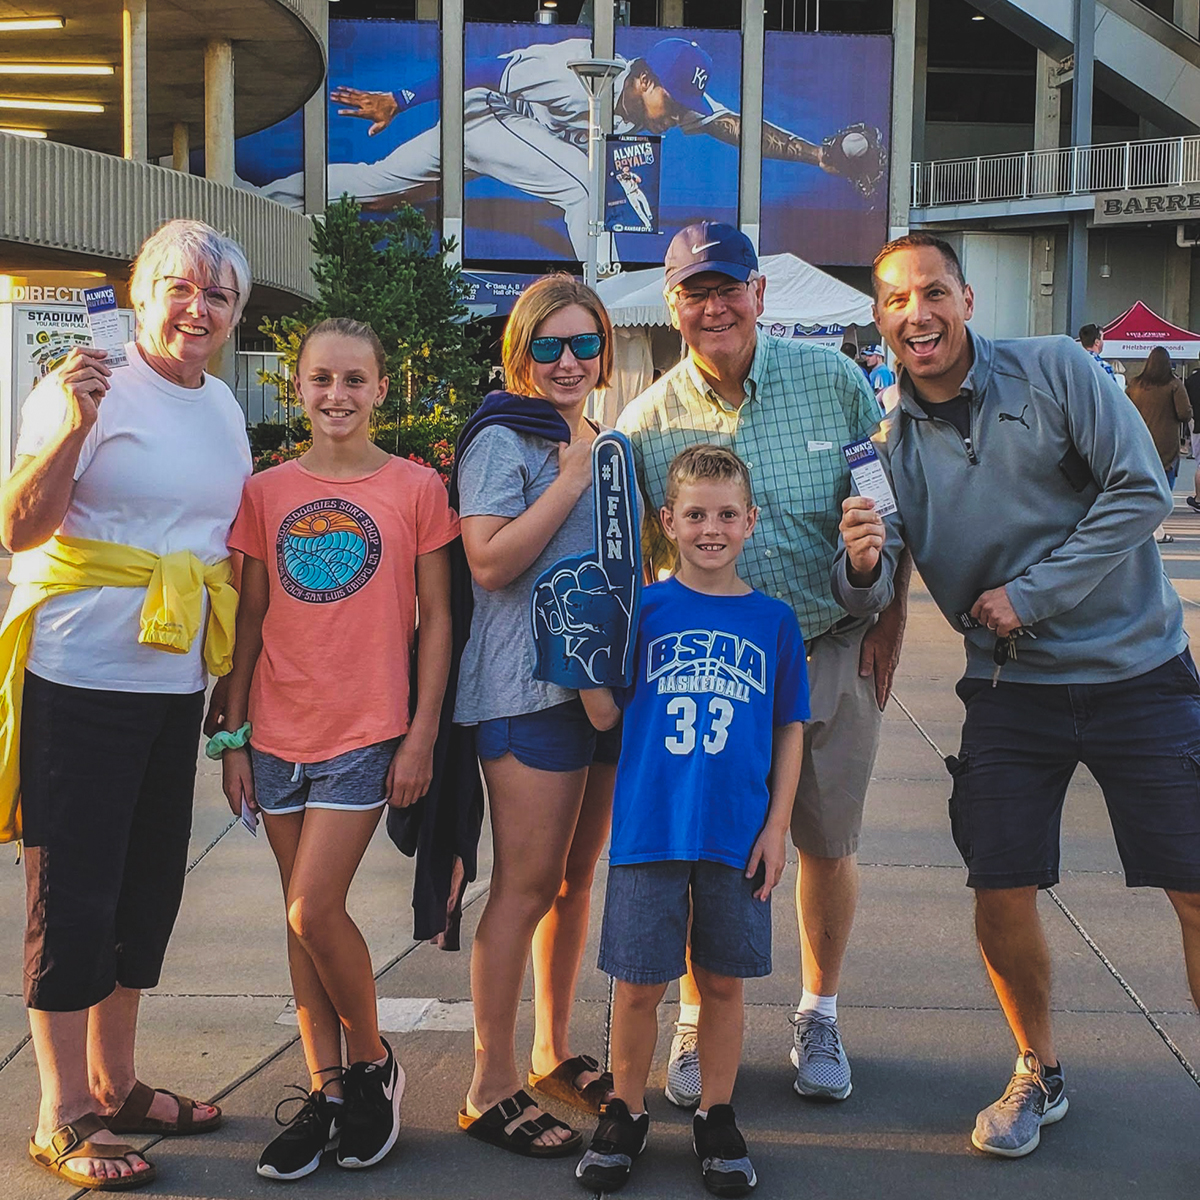 Dr. Blackburn, owner and lead orthodontist,  with his family at a Kansas City Royals game.